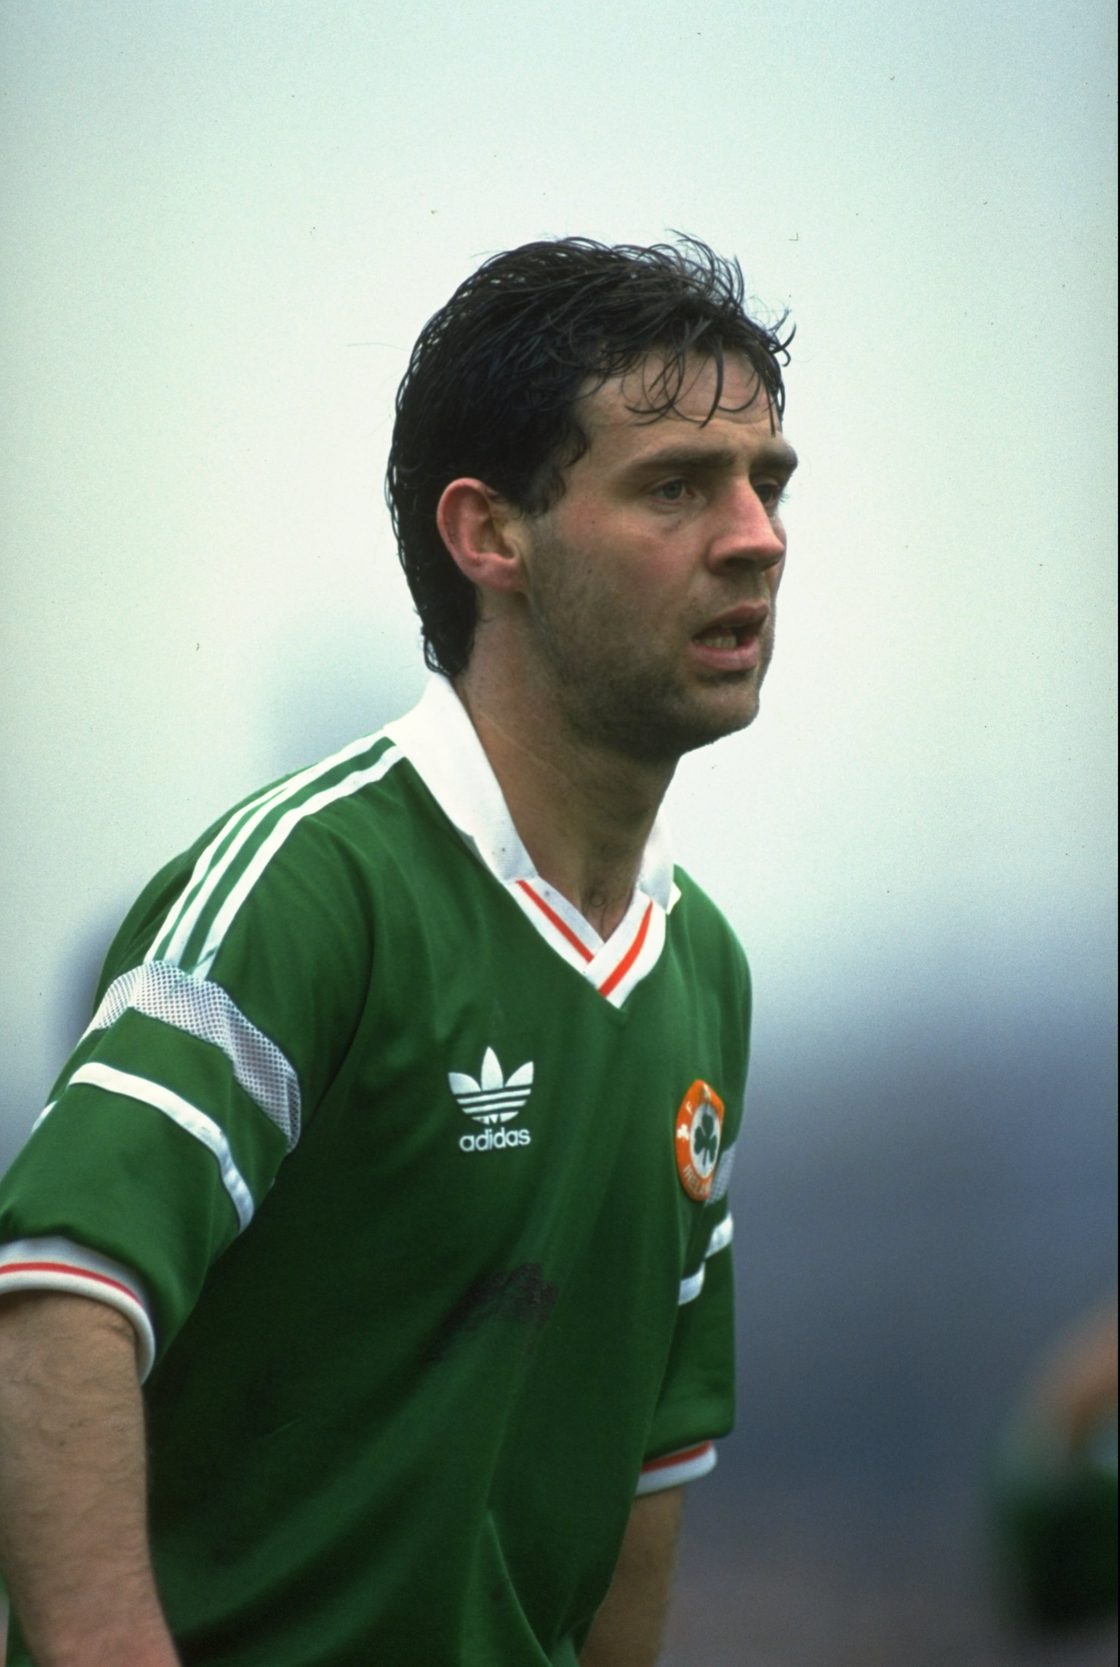 Image - Jim Beglin in 1990 during a B international against England